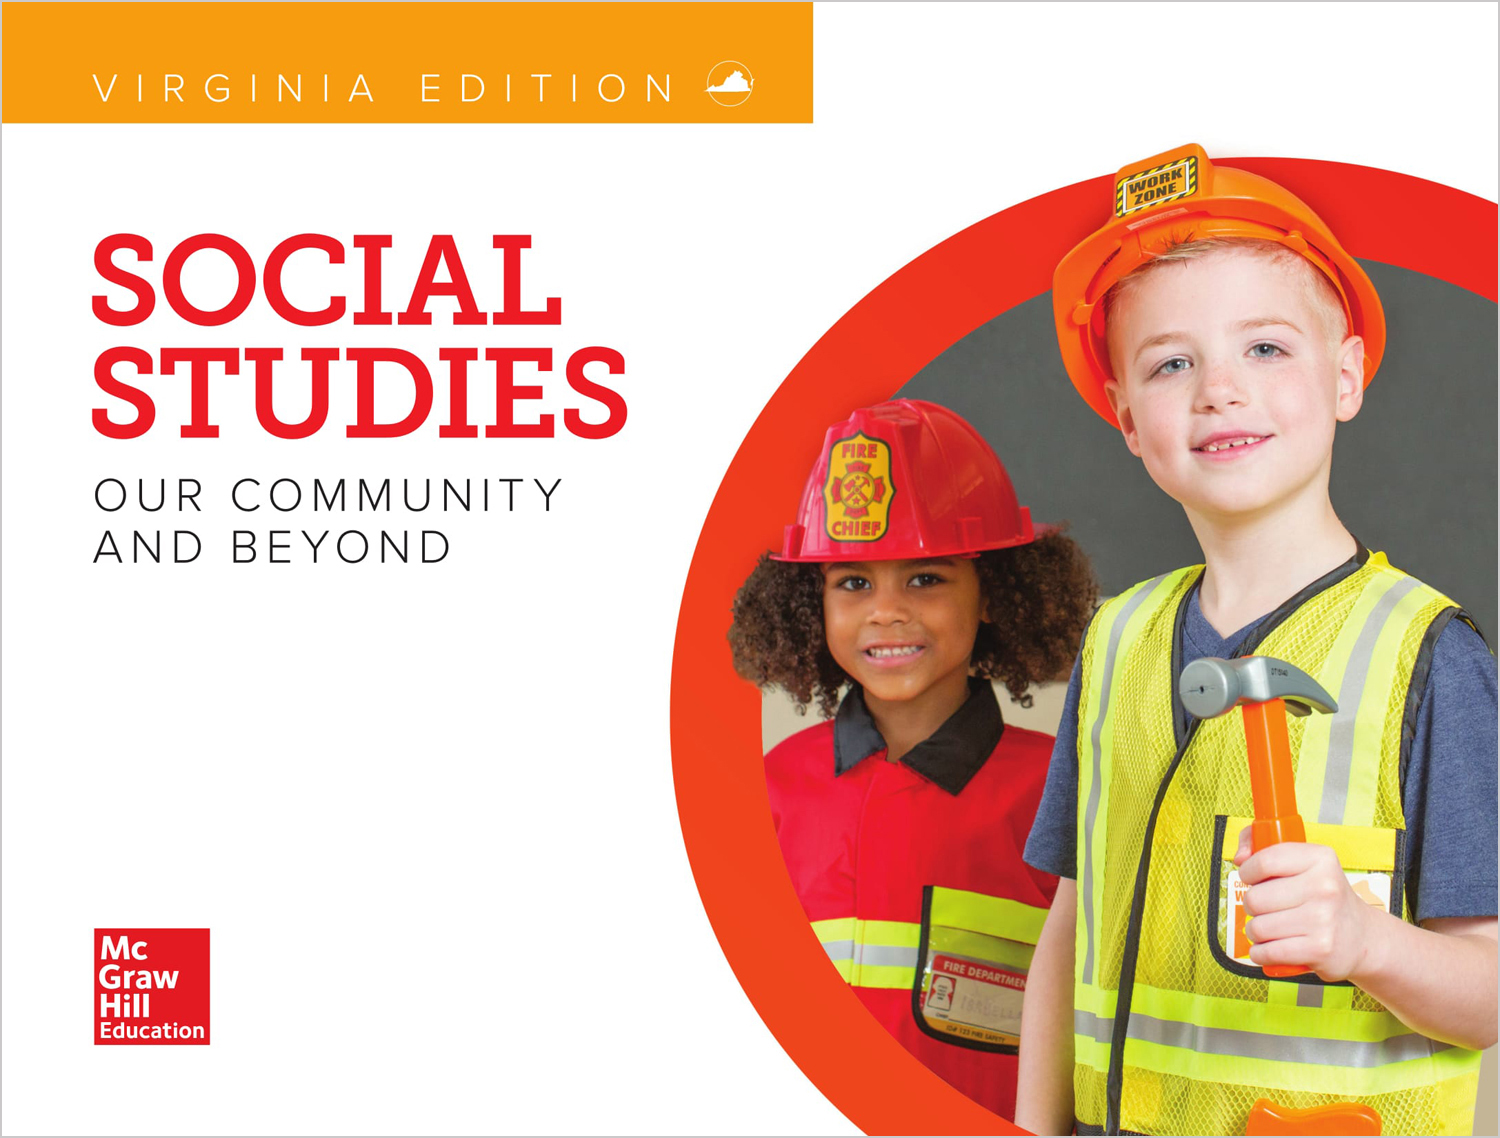 Social Studies Our Community and Beyond cover